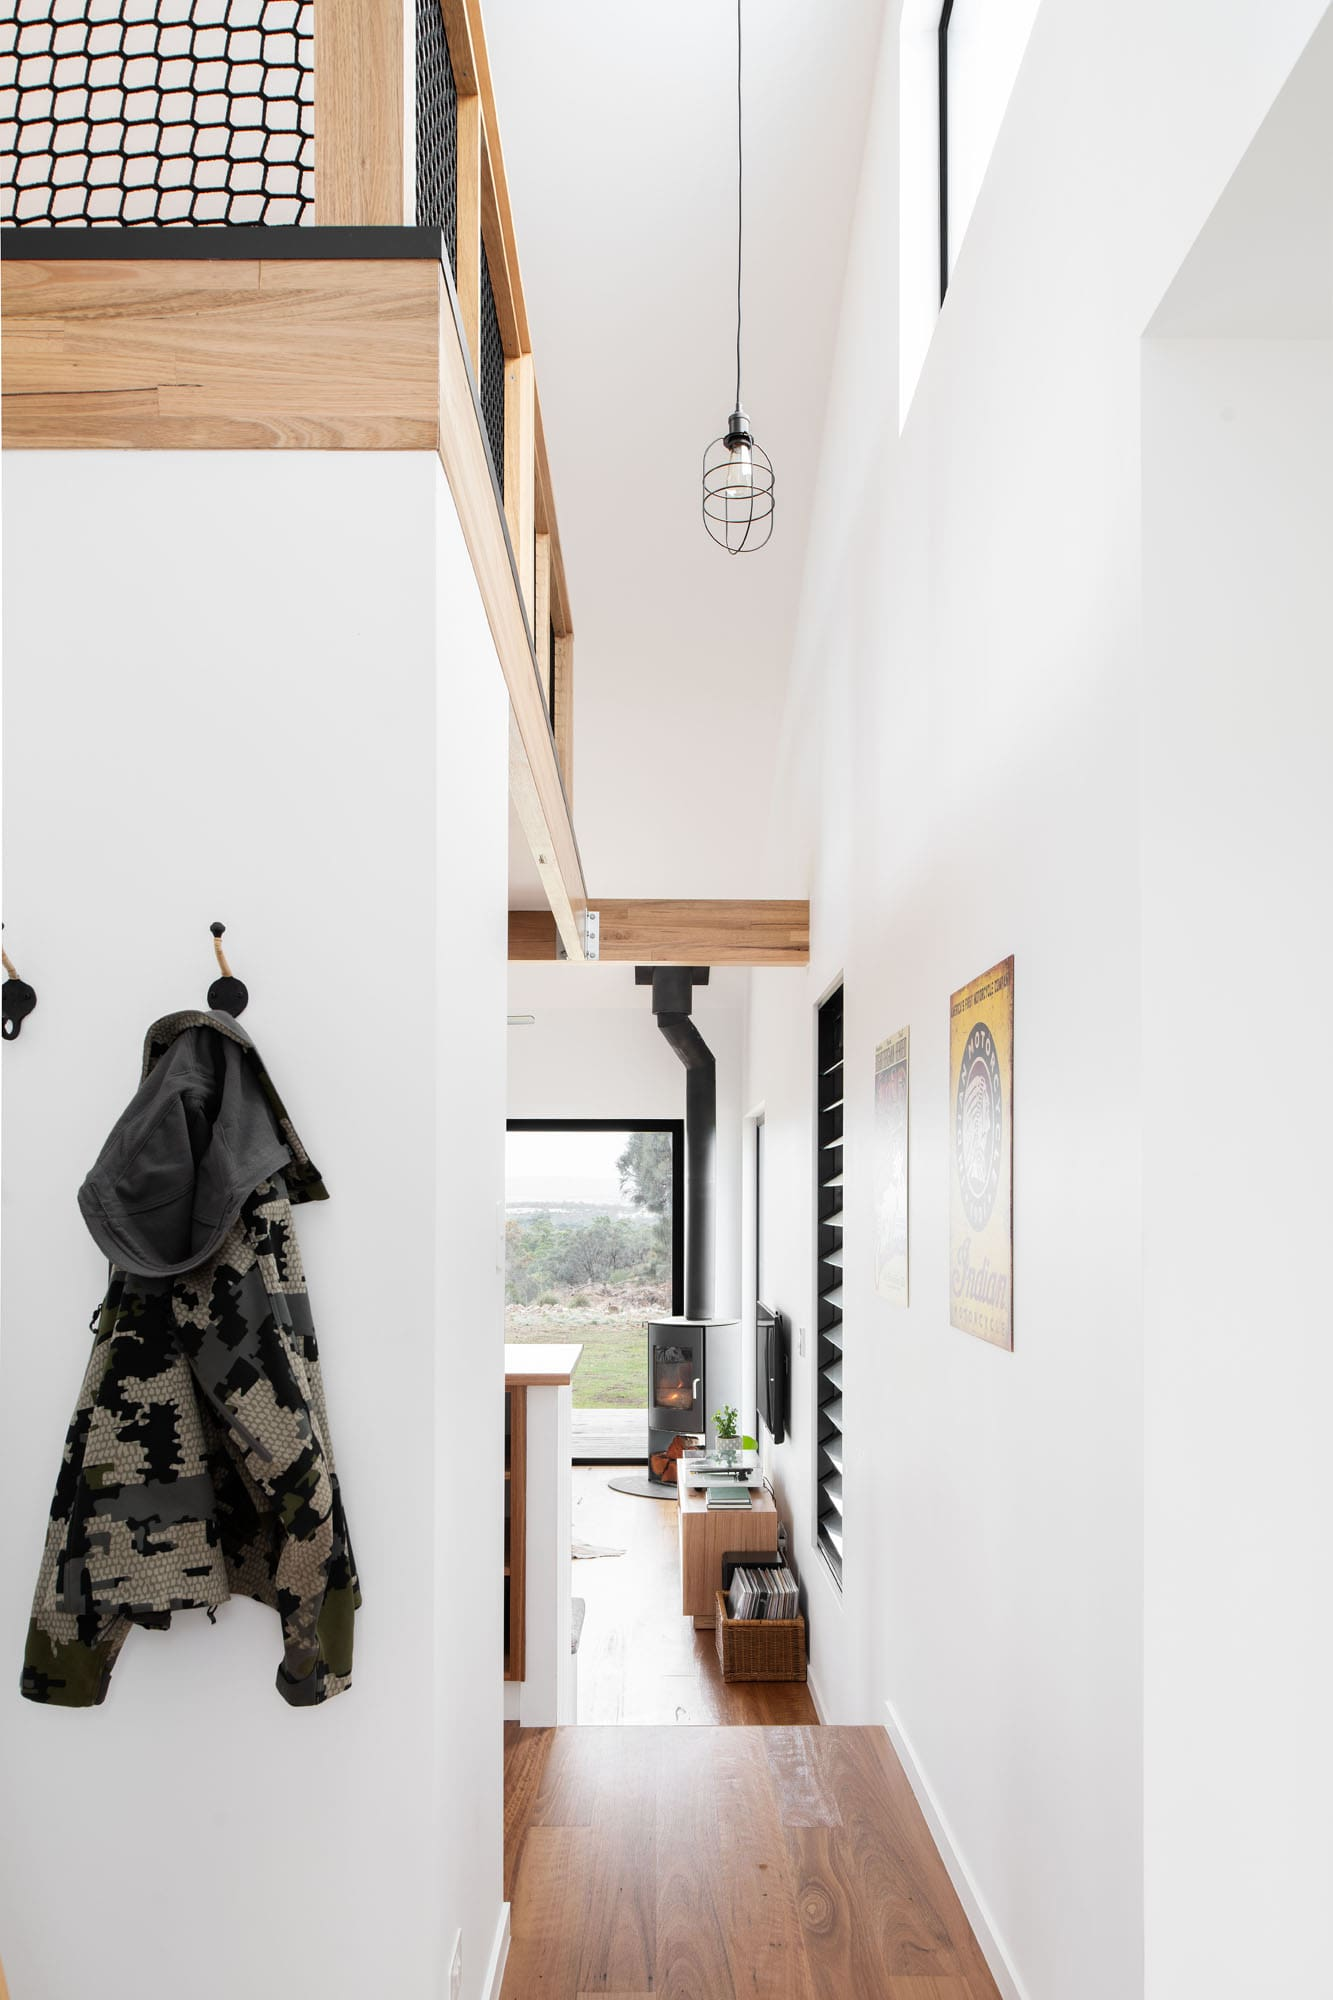 Hallway in sustainable house